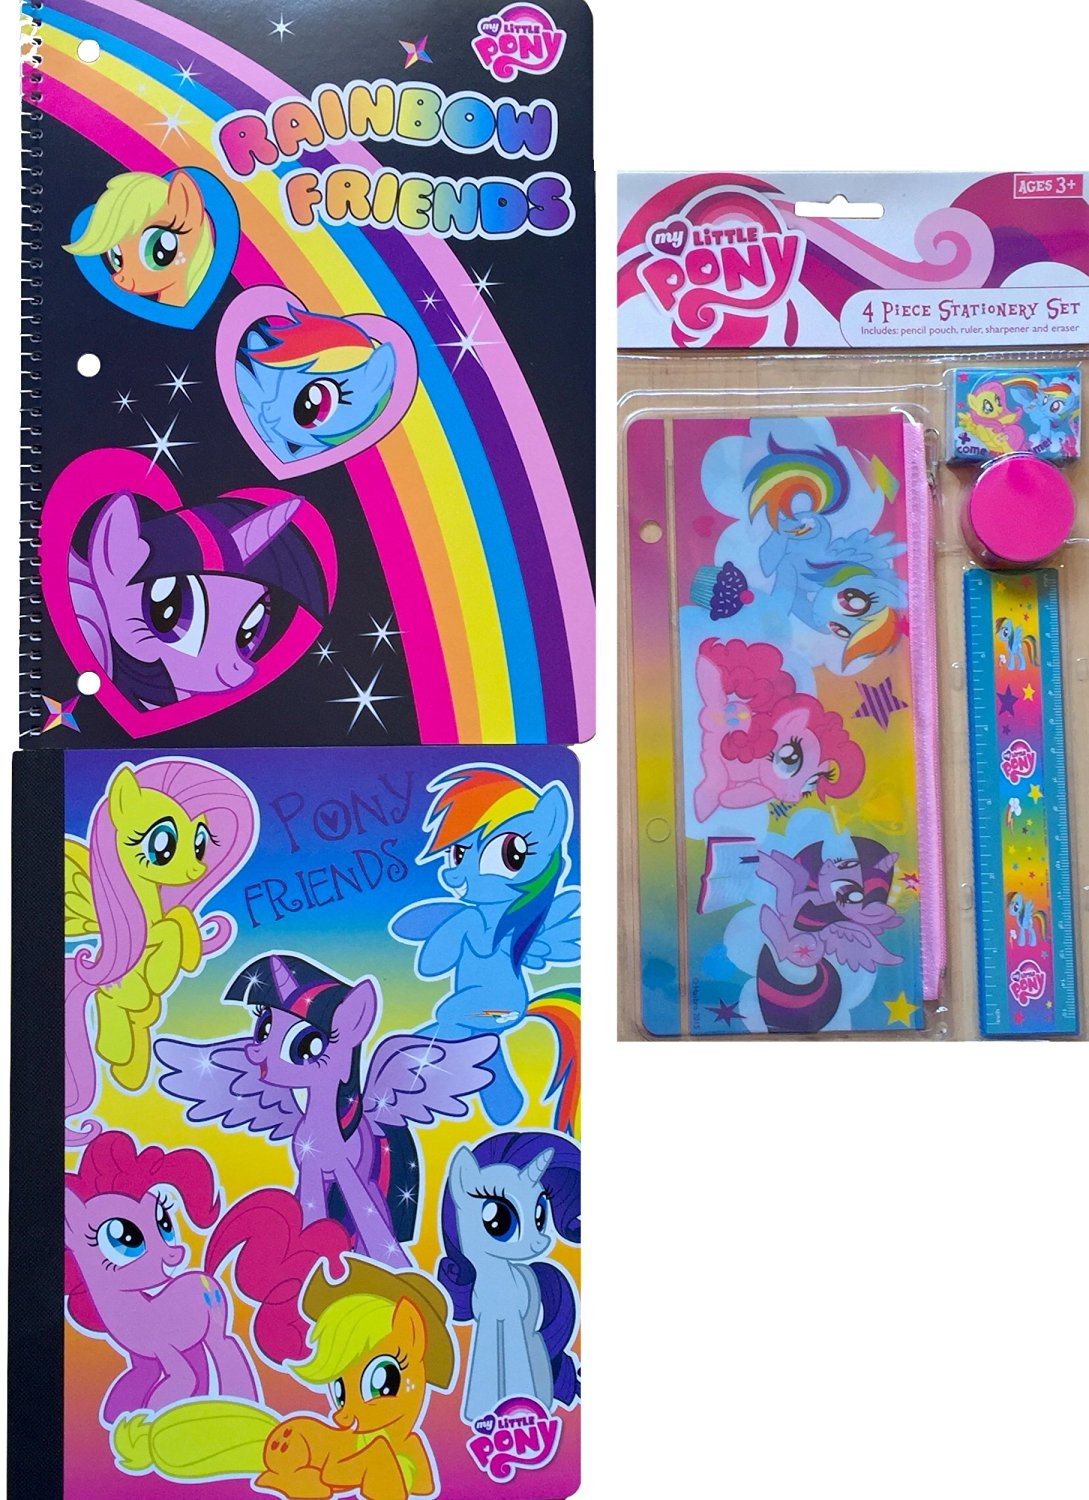 My Little Pony Back to School Supplies Includes My Little Pony Spiral Notebook and Composition Notebook with My Little Pony 4 Piece Stationary Set Includes Pencil Pouch, Eraser, Ruler and More